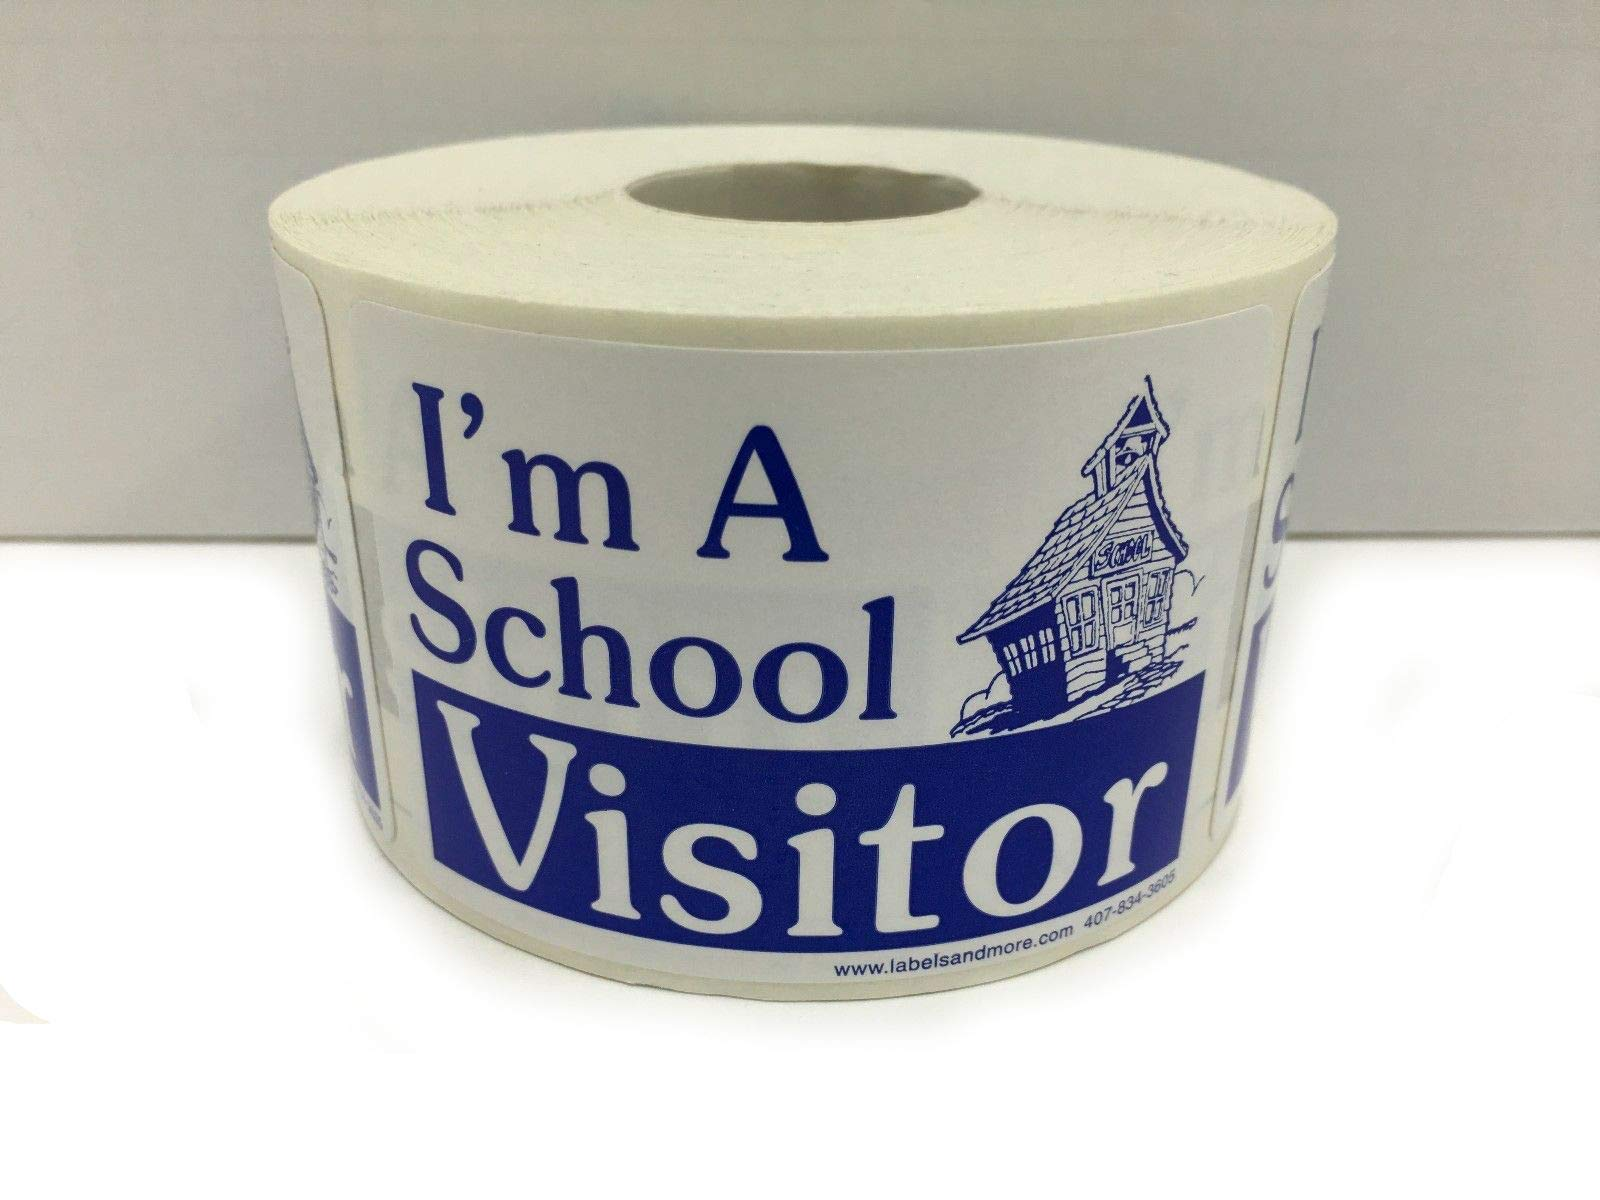 I'm A School Visitor Name Badge Identification Stickers / 500 Labels - Blue 2x3 by ESG Warehouse